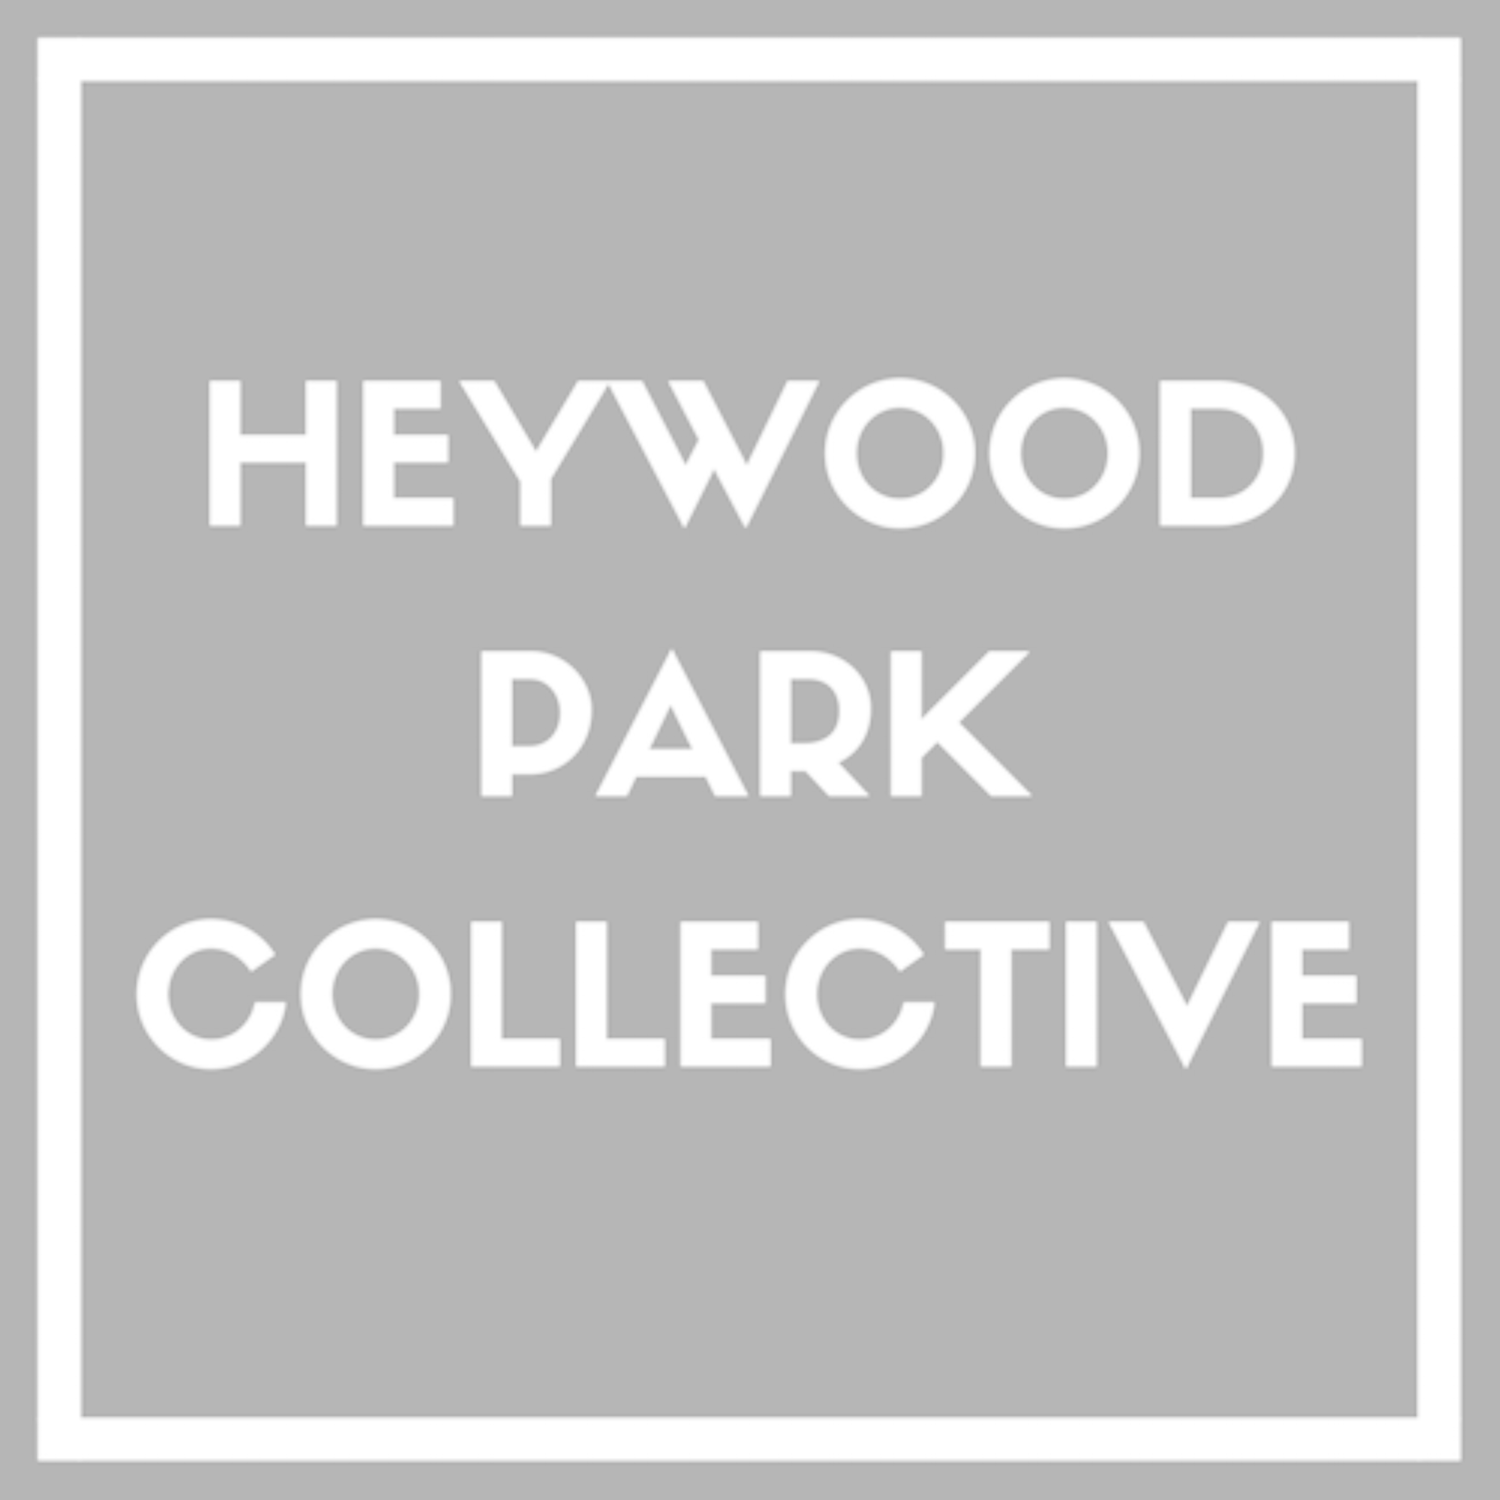 HEYWOODPARKCOLLECTIVE